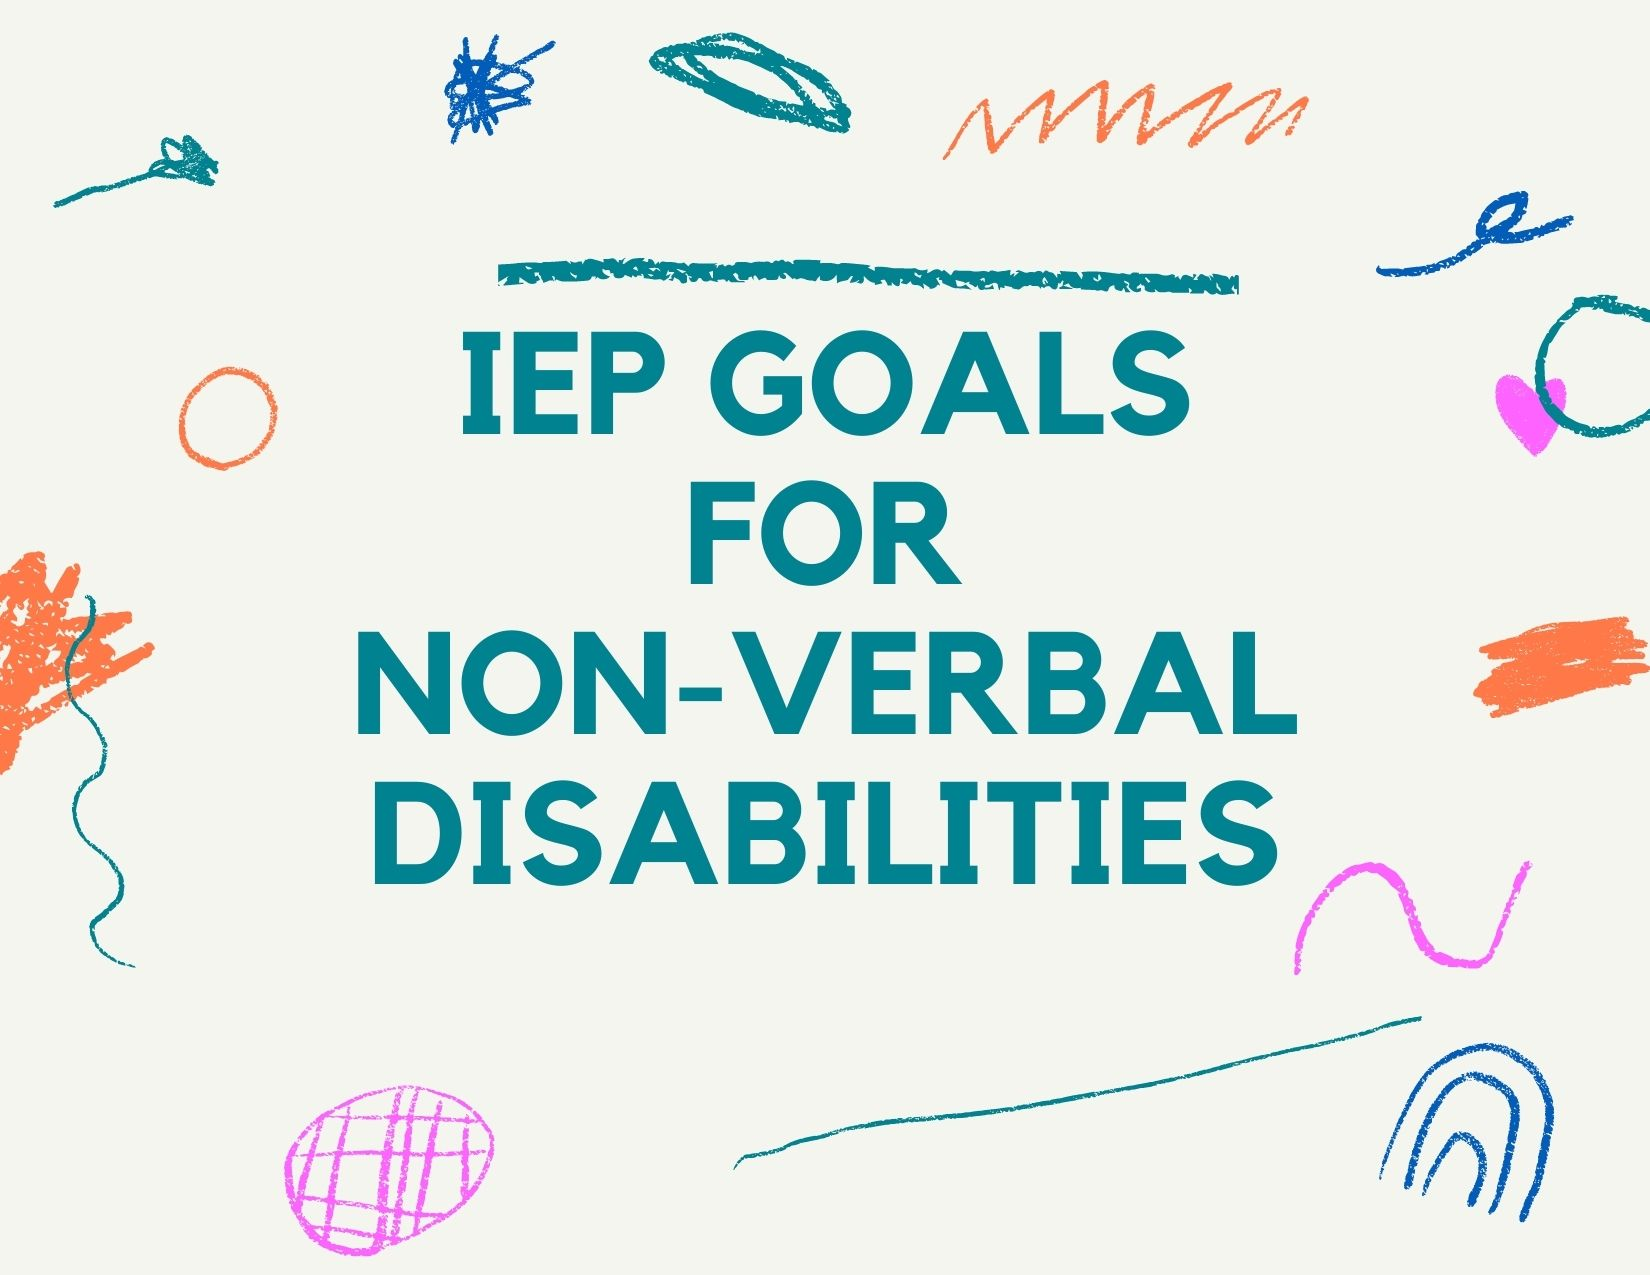 IEP Goals for Students with Non-Verbal Learning Disabilities (NVLD)